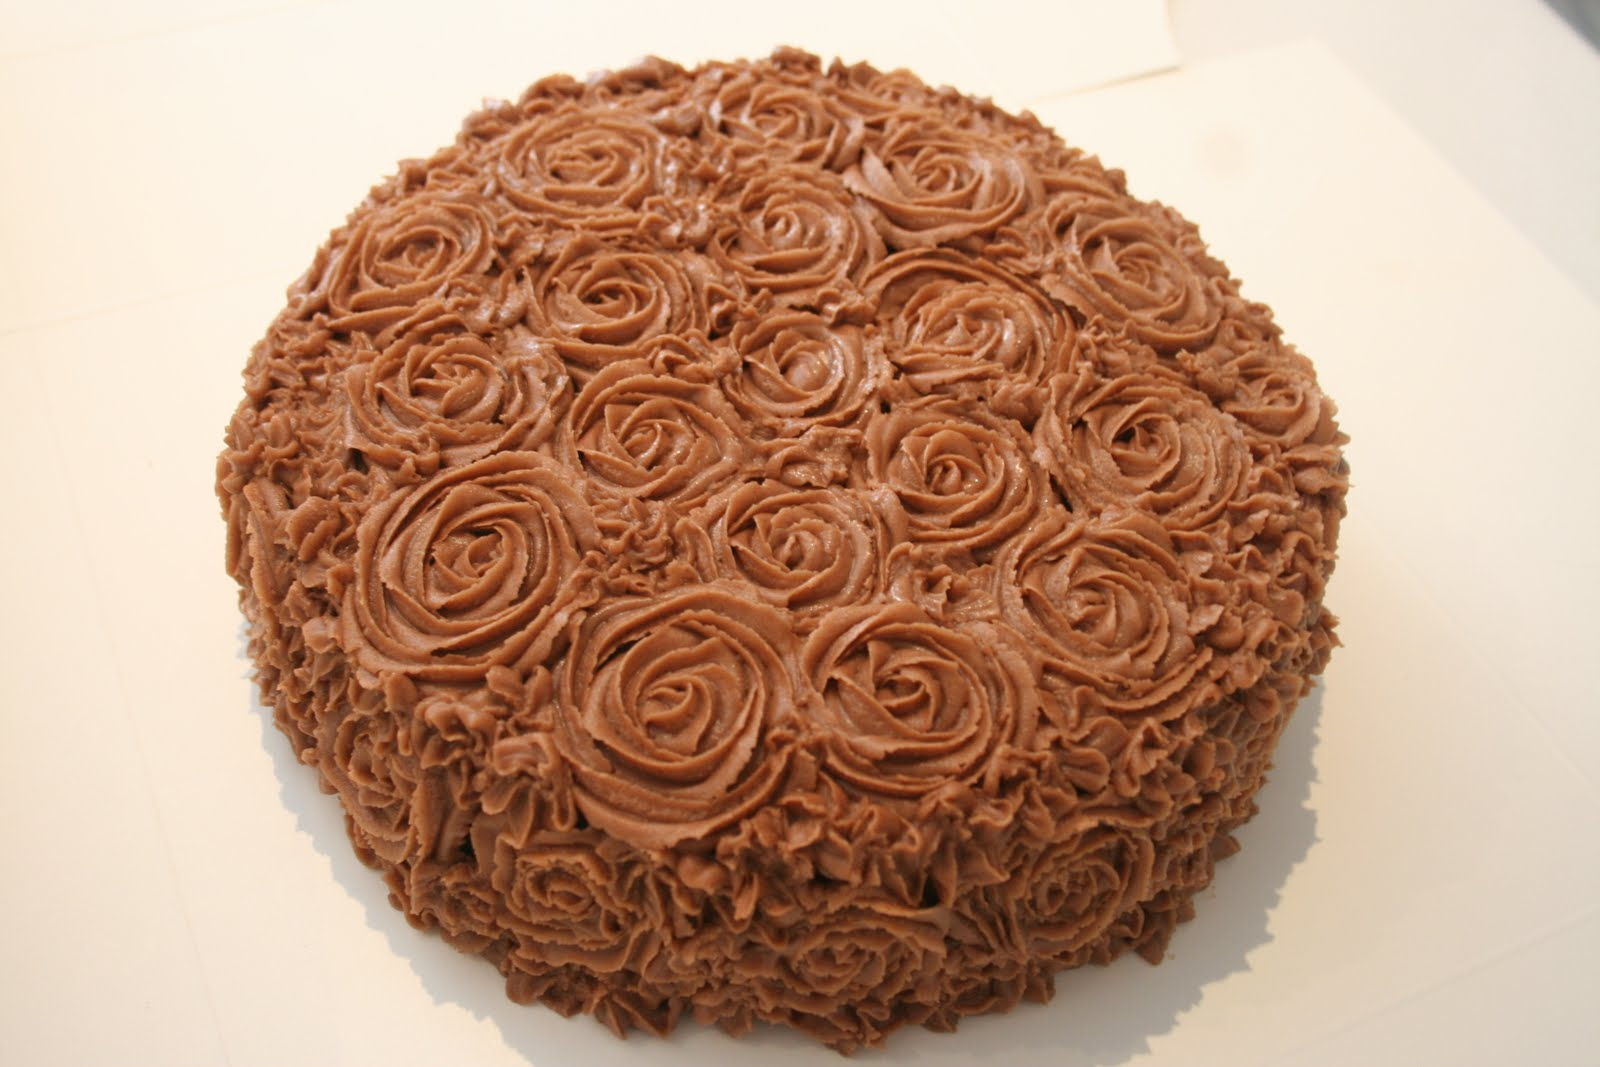 Recipes chocolate cake easy bbc food recipes easy chocolate cake simple easy chocolate cake recipe forumfinder Gallery